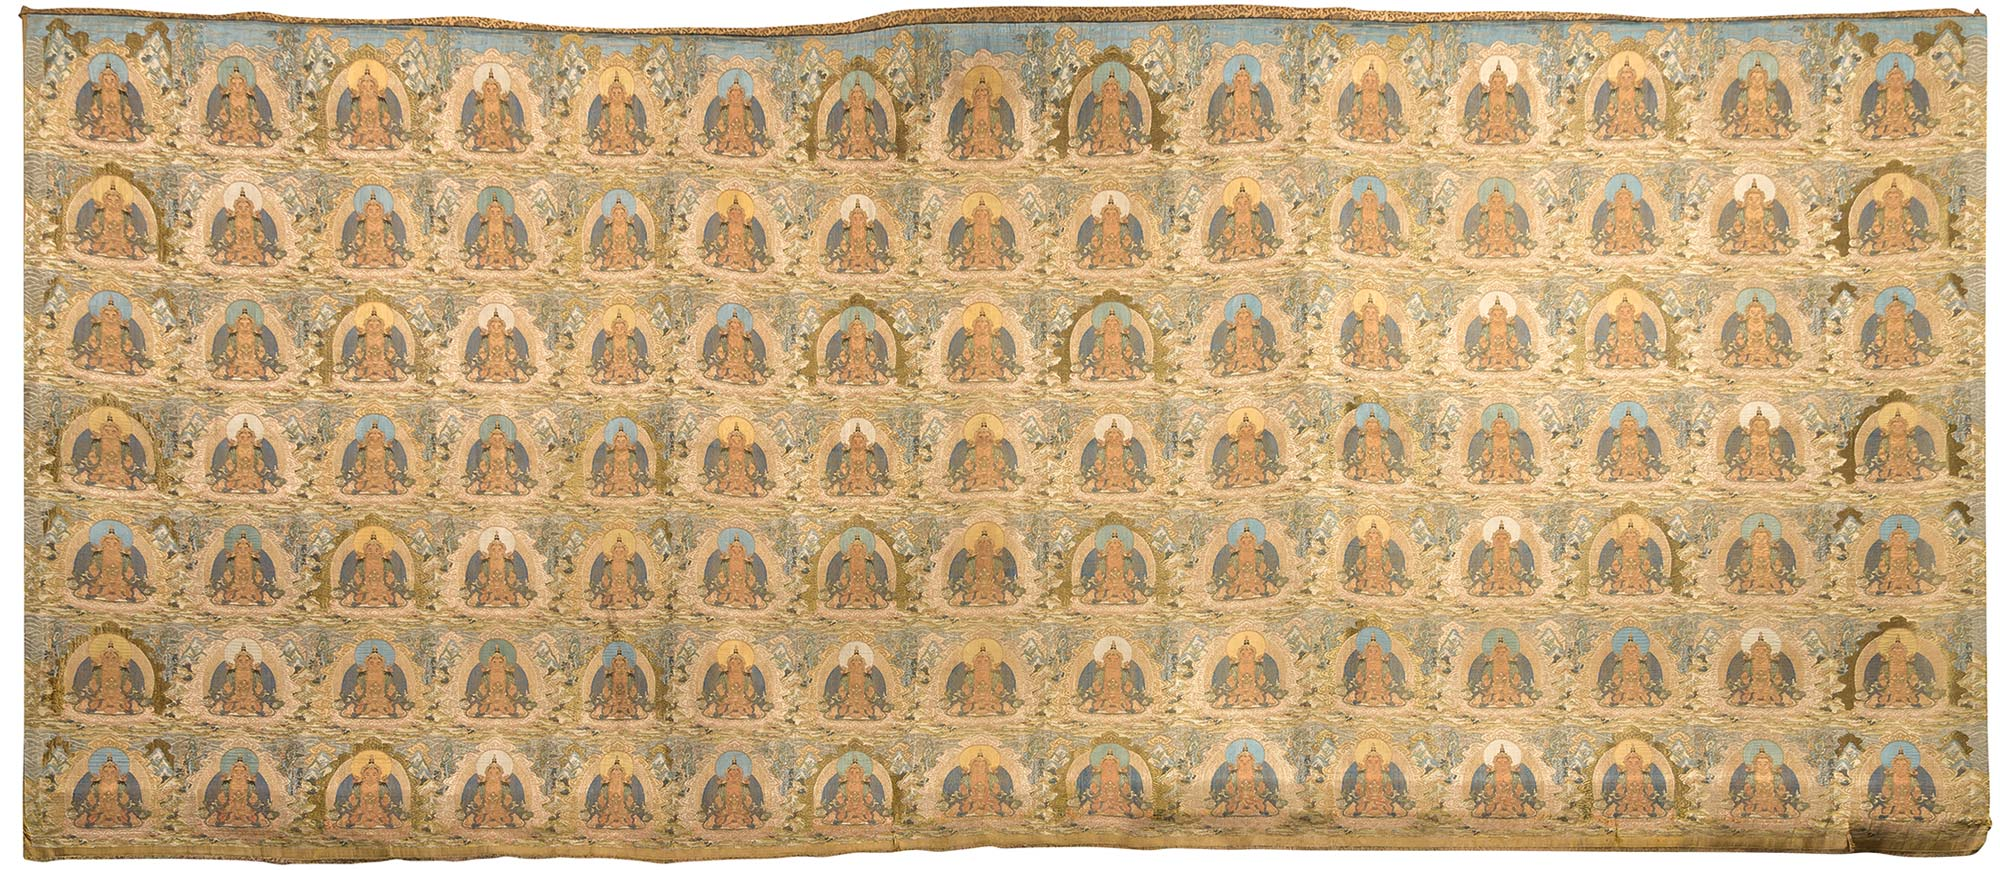 Lot image - Imperial Tibetan Gold Woven Tapestry Hanging of the One-Thousand Buddhas